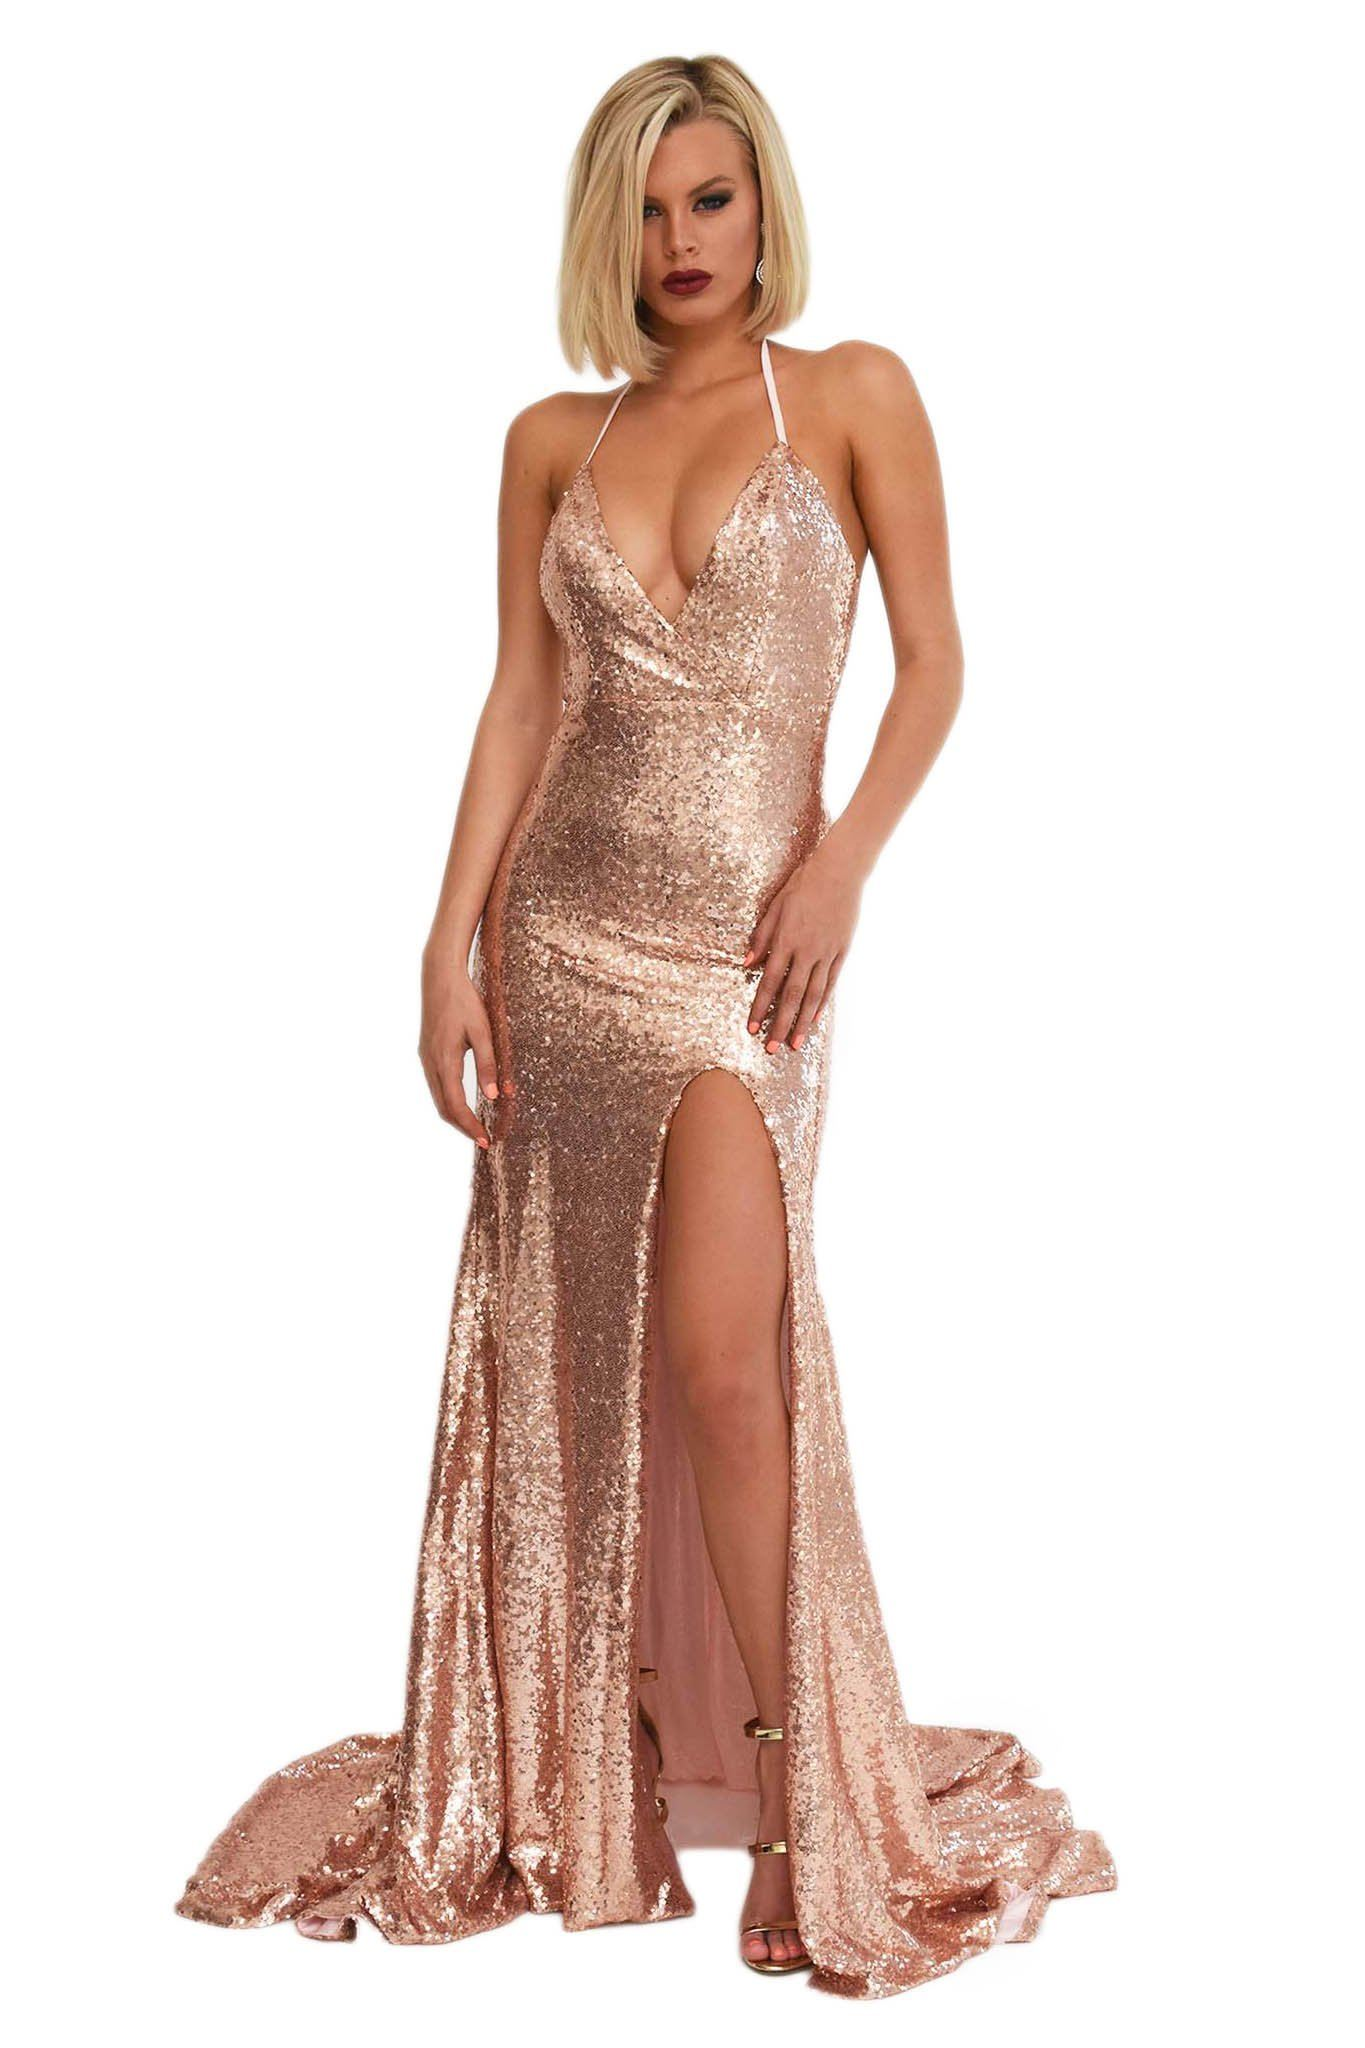 Estellina Front Slit Sequin Gown - Rose Gold – Noodz Boutique